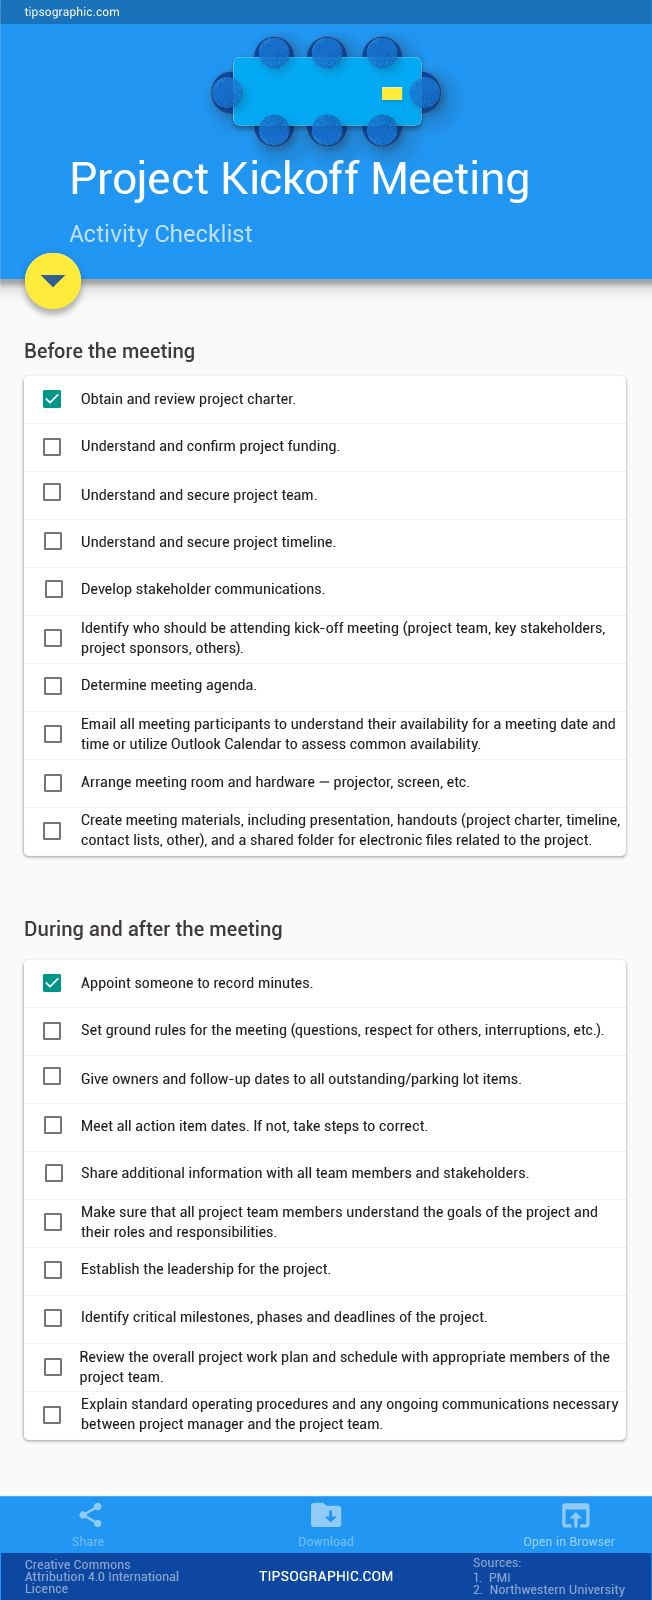 How to Plan Your Project Kickoff Meeting – an Easy Checklist